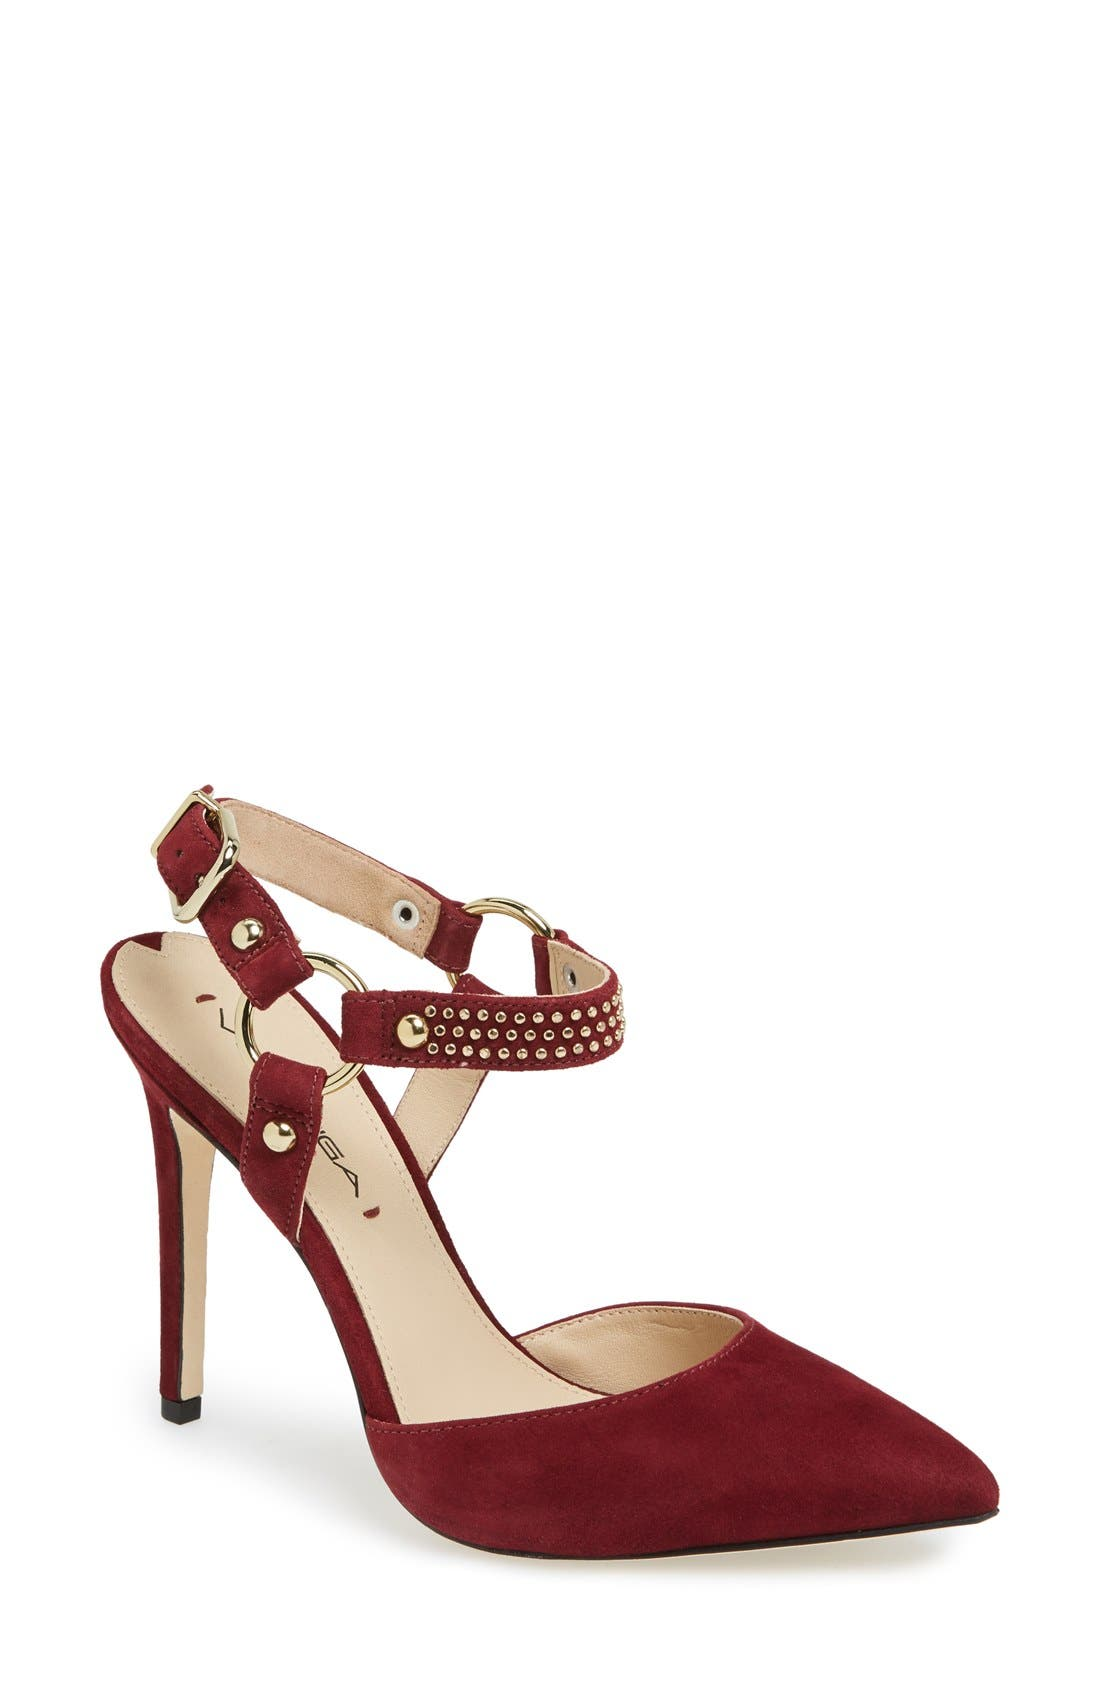 Main Image - Via Spiga 'Flo' Pointy Toe Pump (Women)